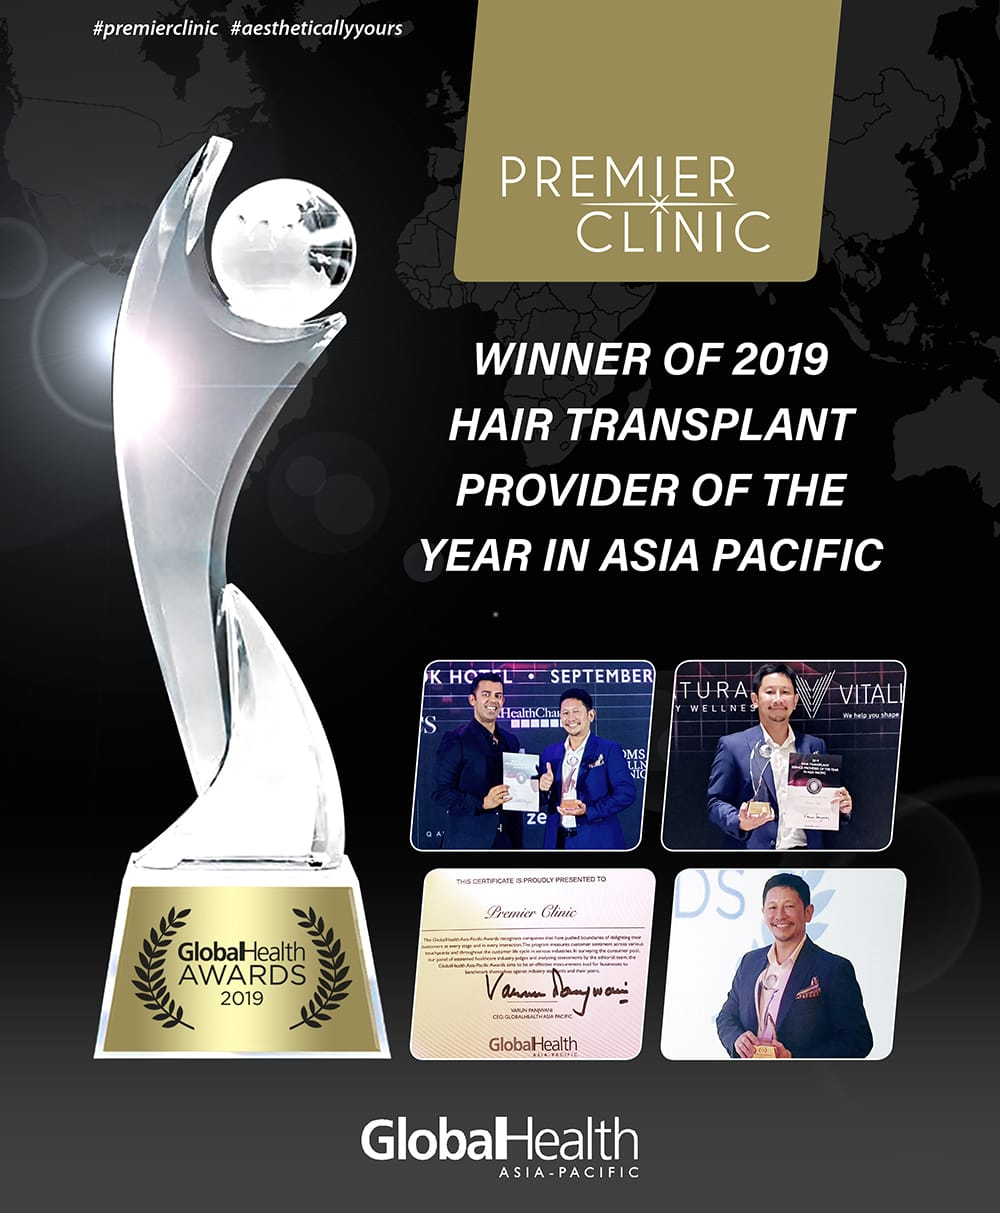 PREMIER CLINIC IS THE TOP HAIR TRANSPLANT PROVIDER ASIA PACIFIC 2019